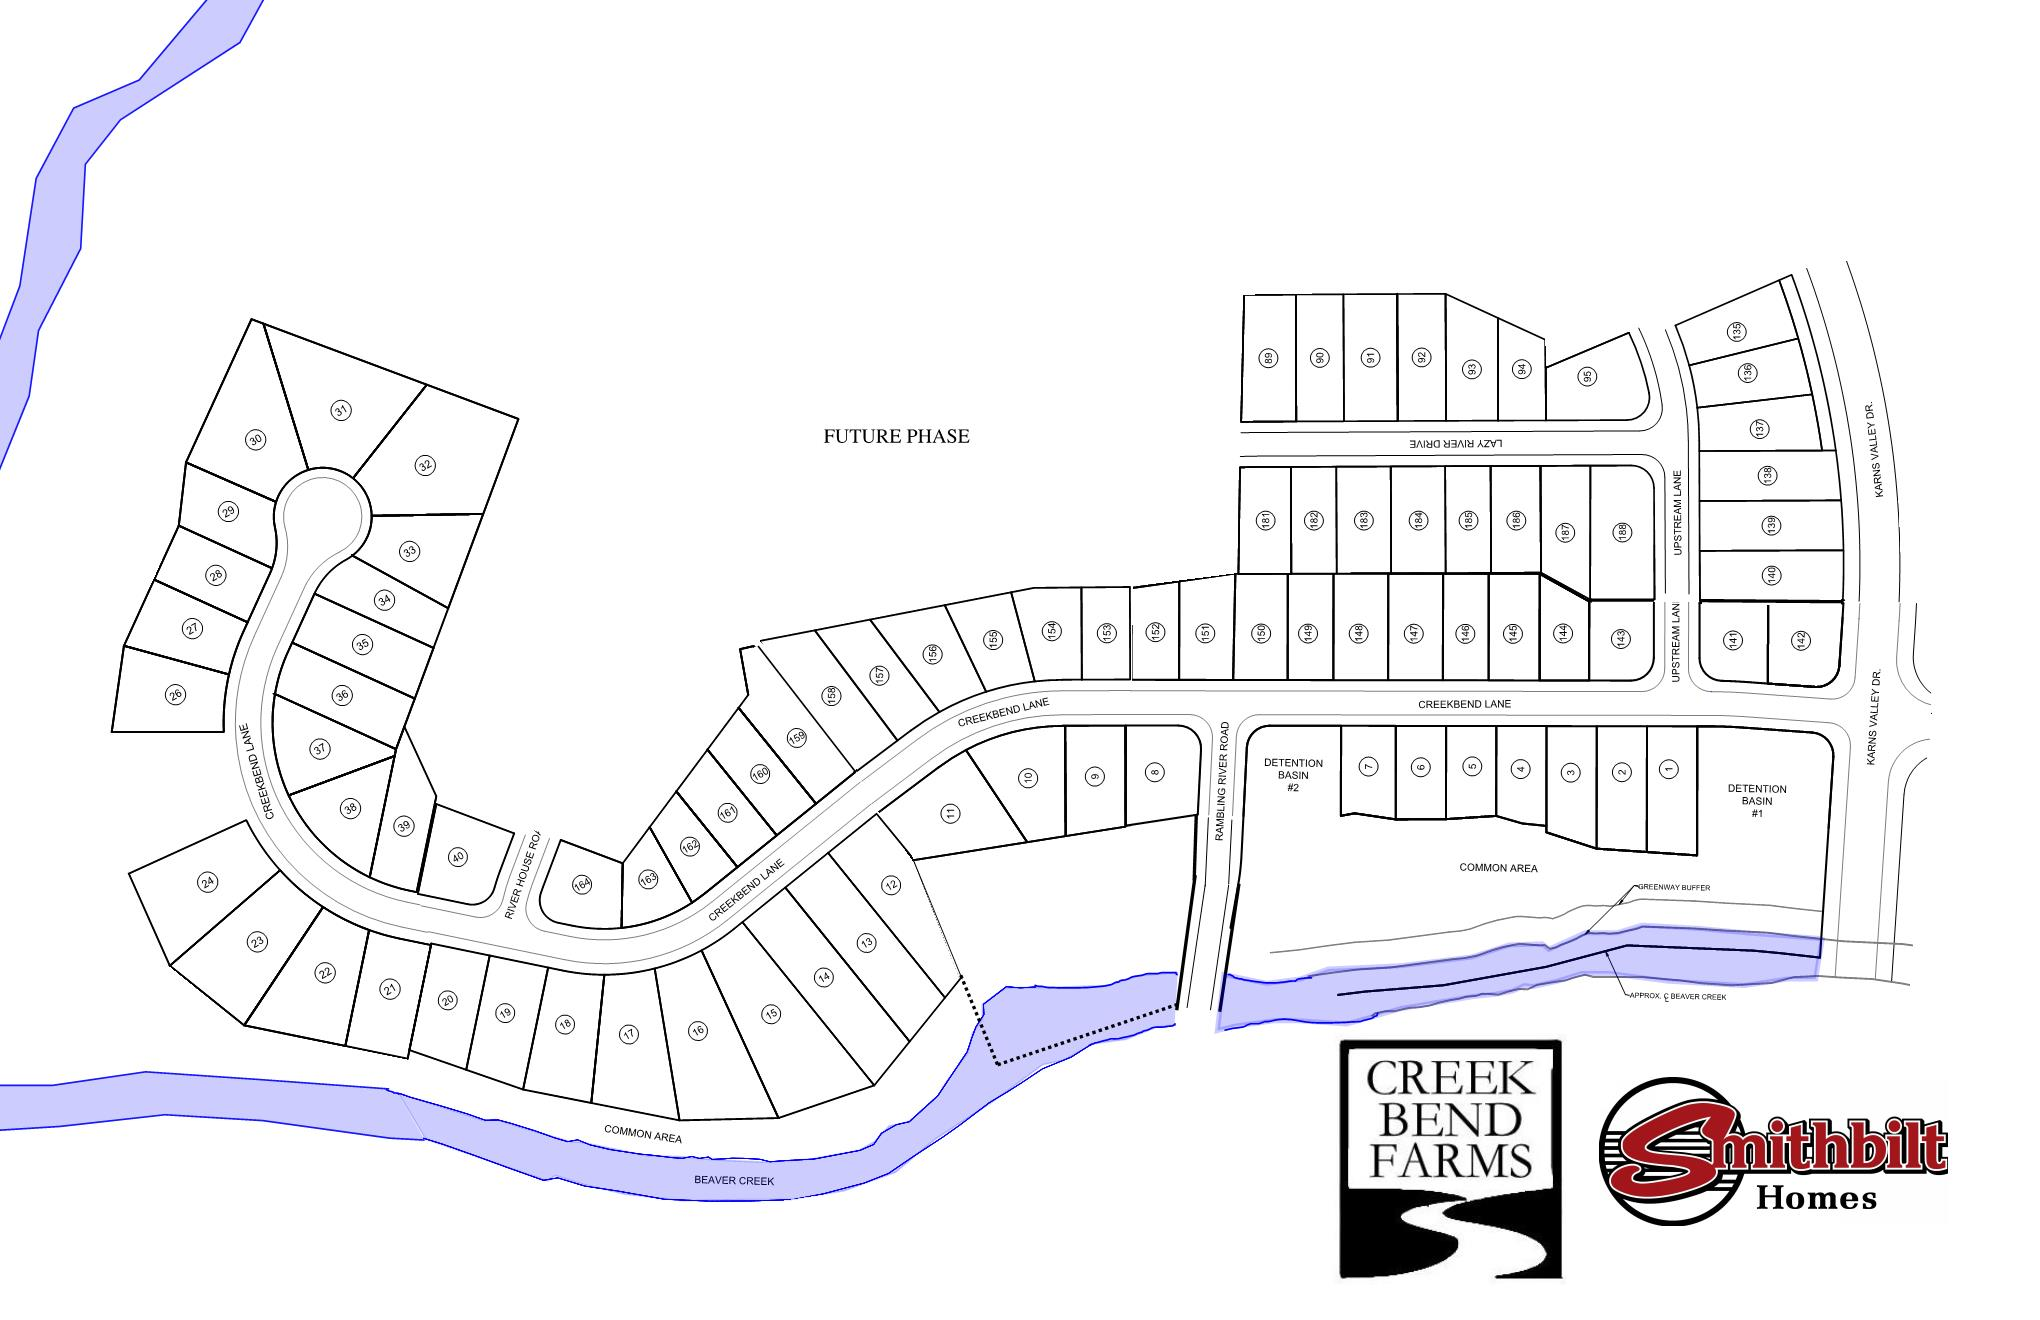 Creek Bend Farms Phase 1, 2 and 3